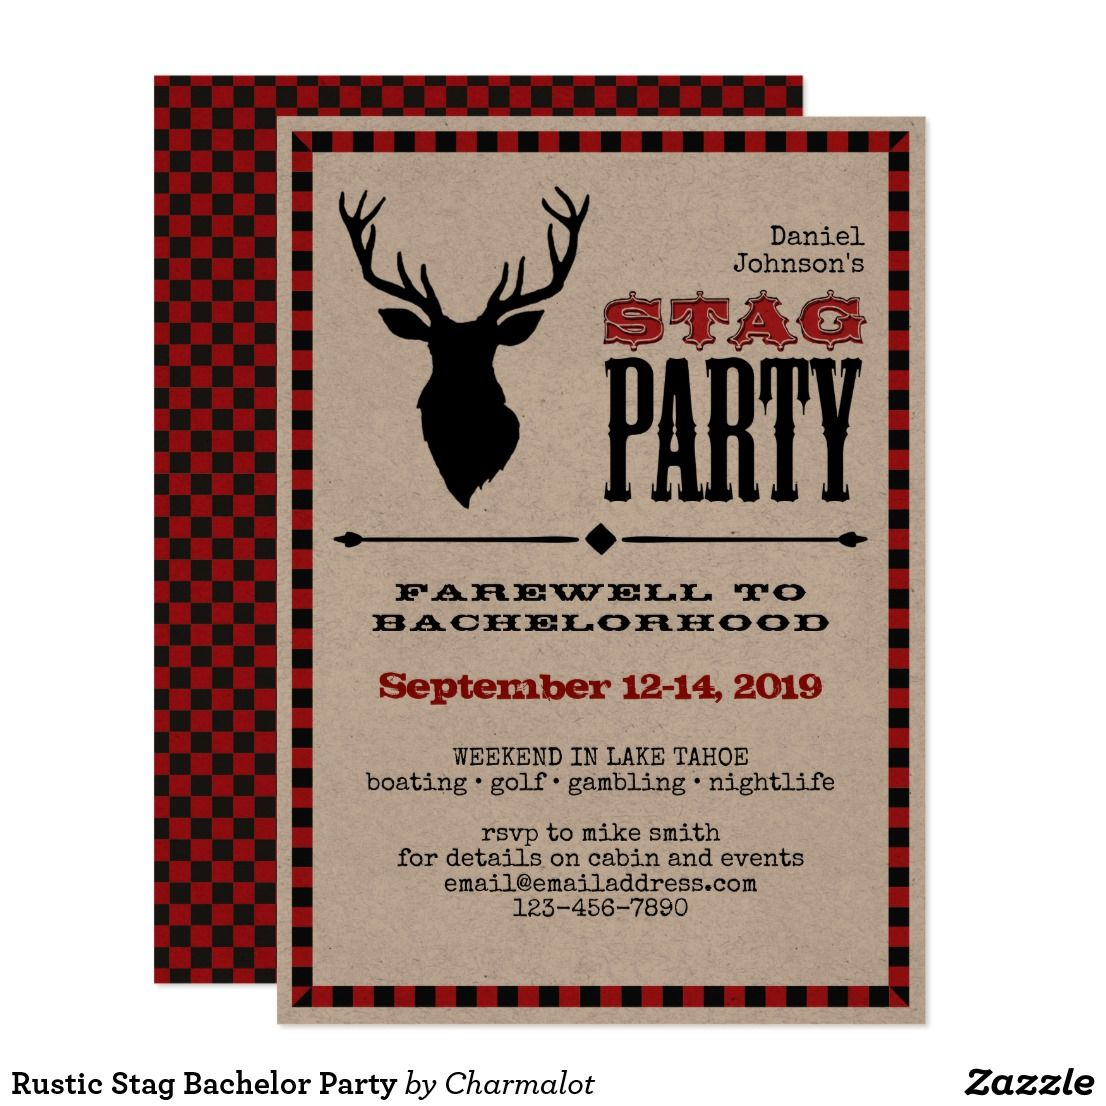 bucks night invitations | Invitationjpg.com